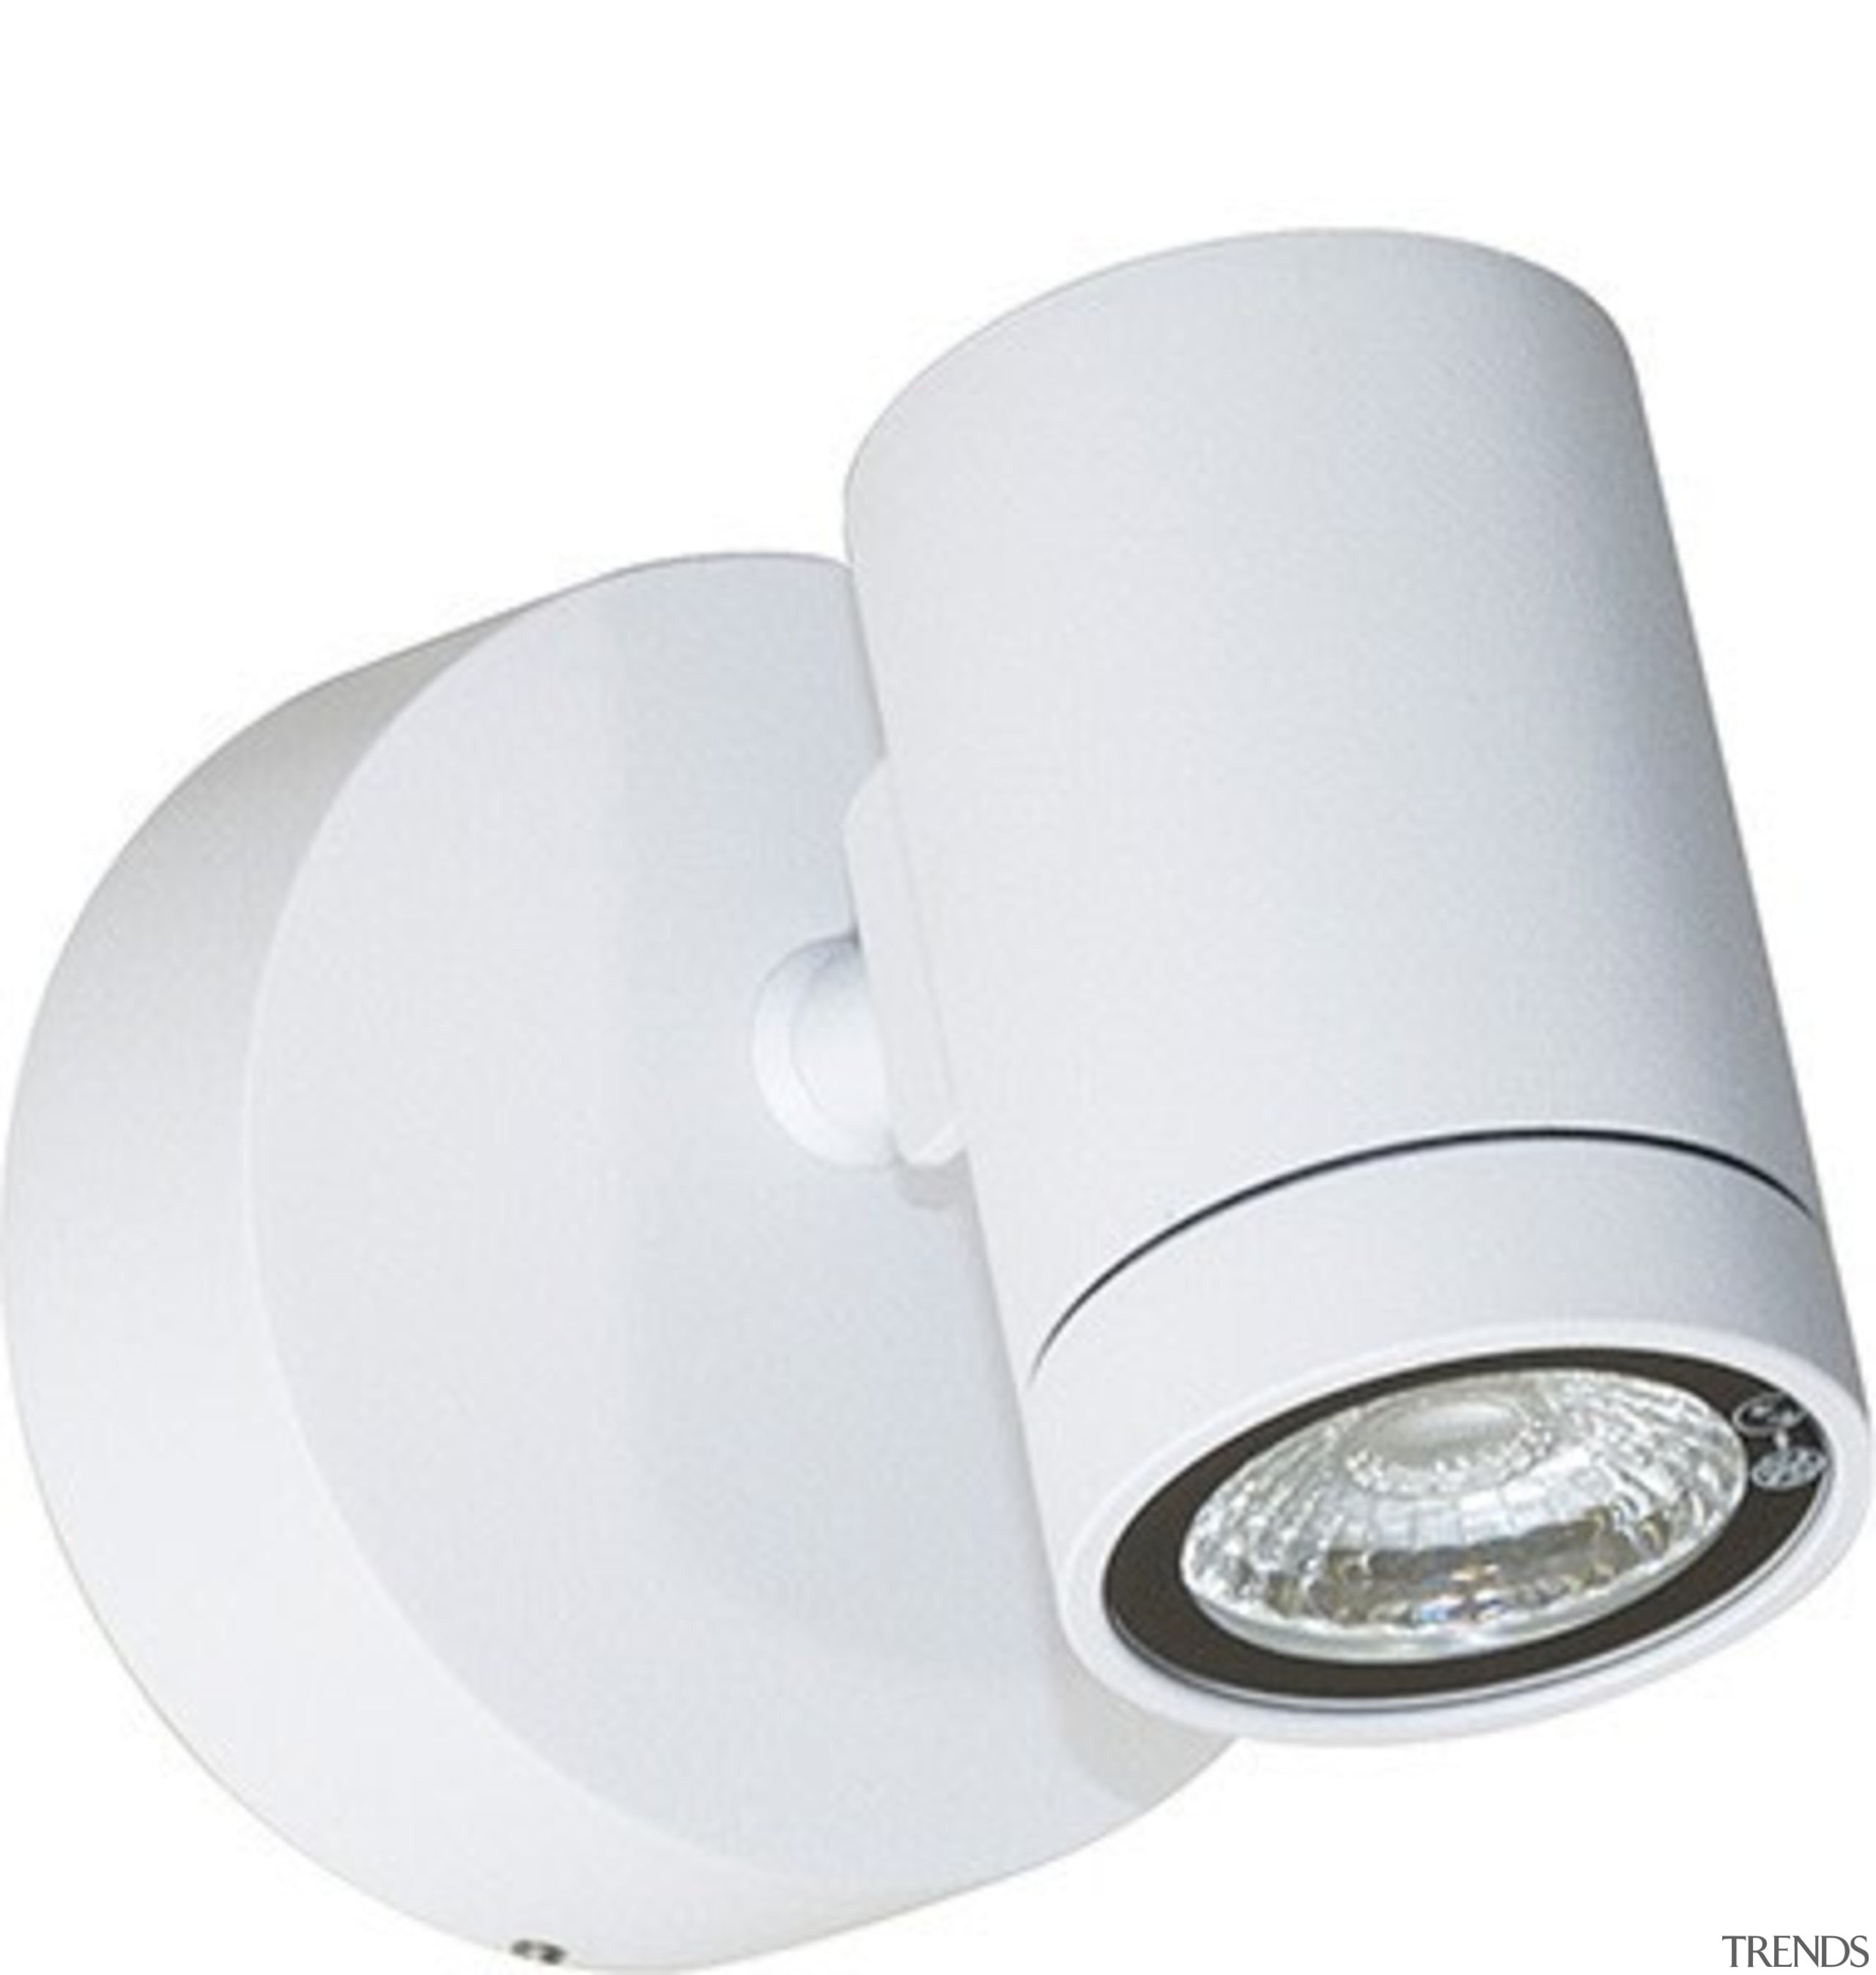 FeaturesOur Gunnsy exterior spotlights feature highly efficient and lighting, product, product design, white